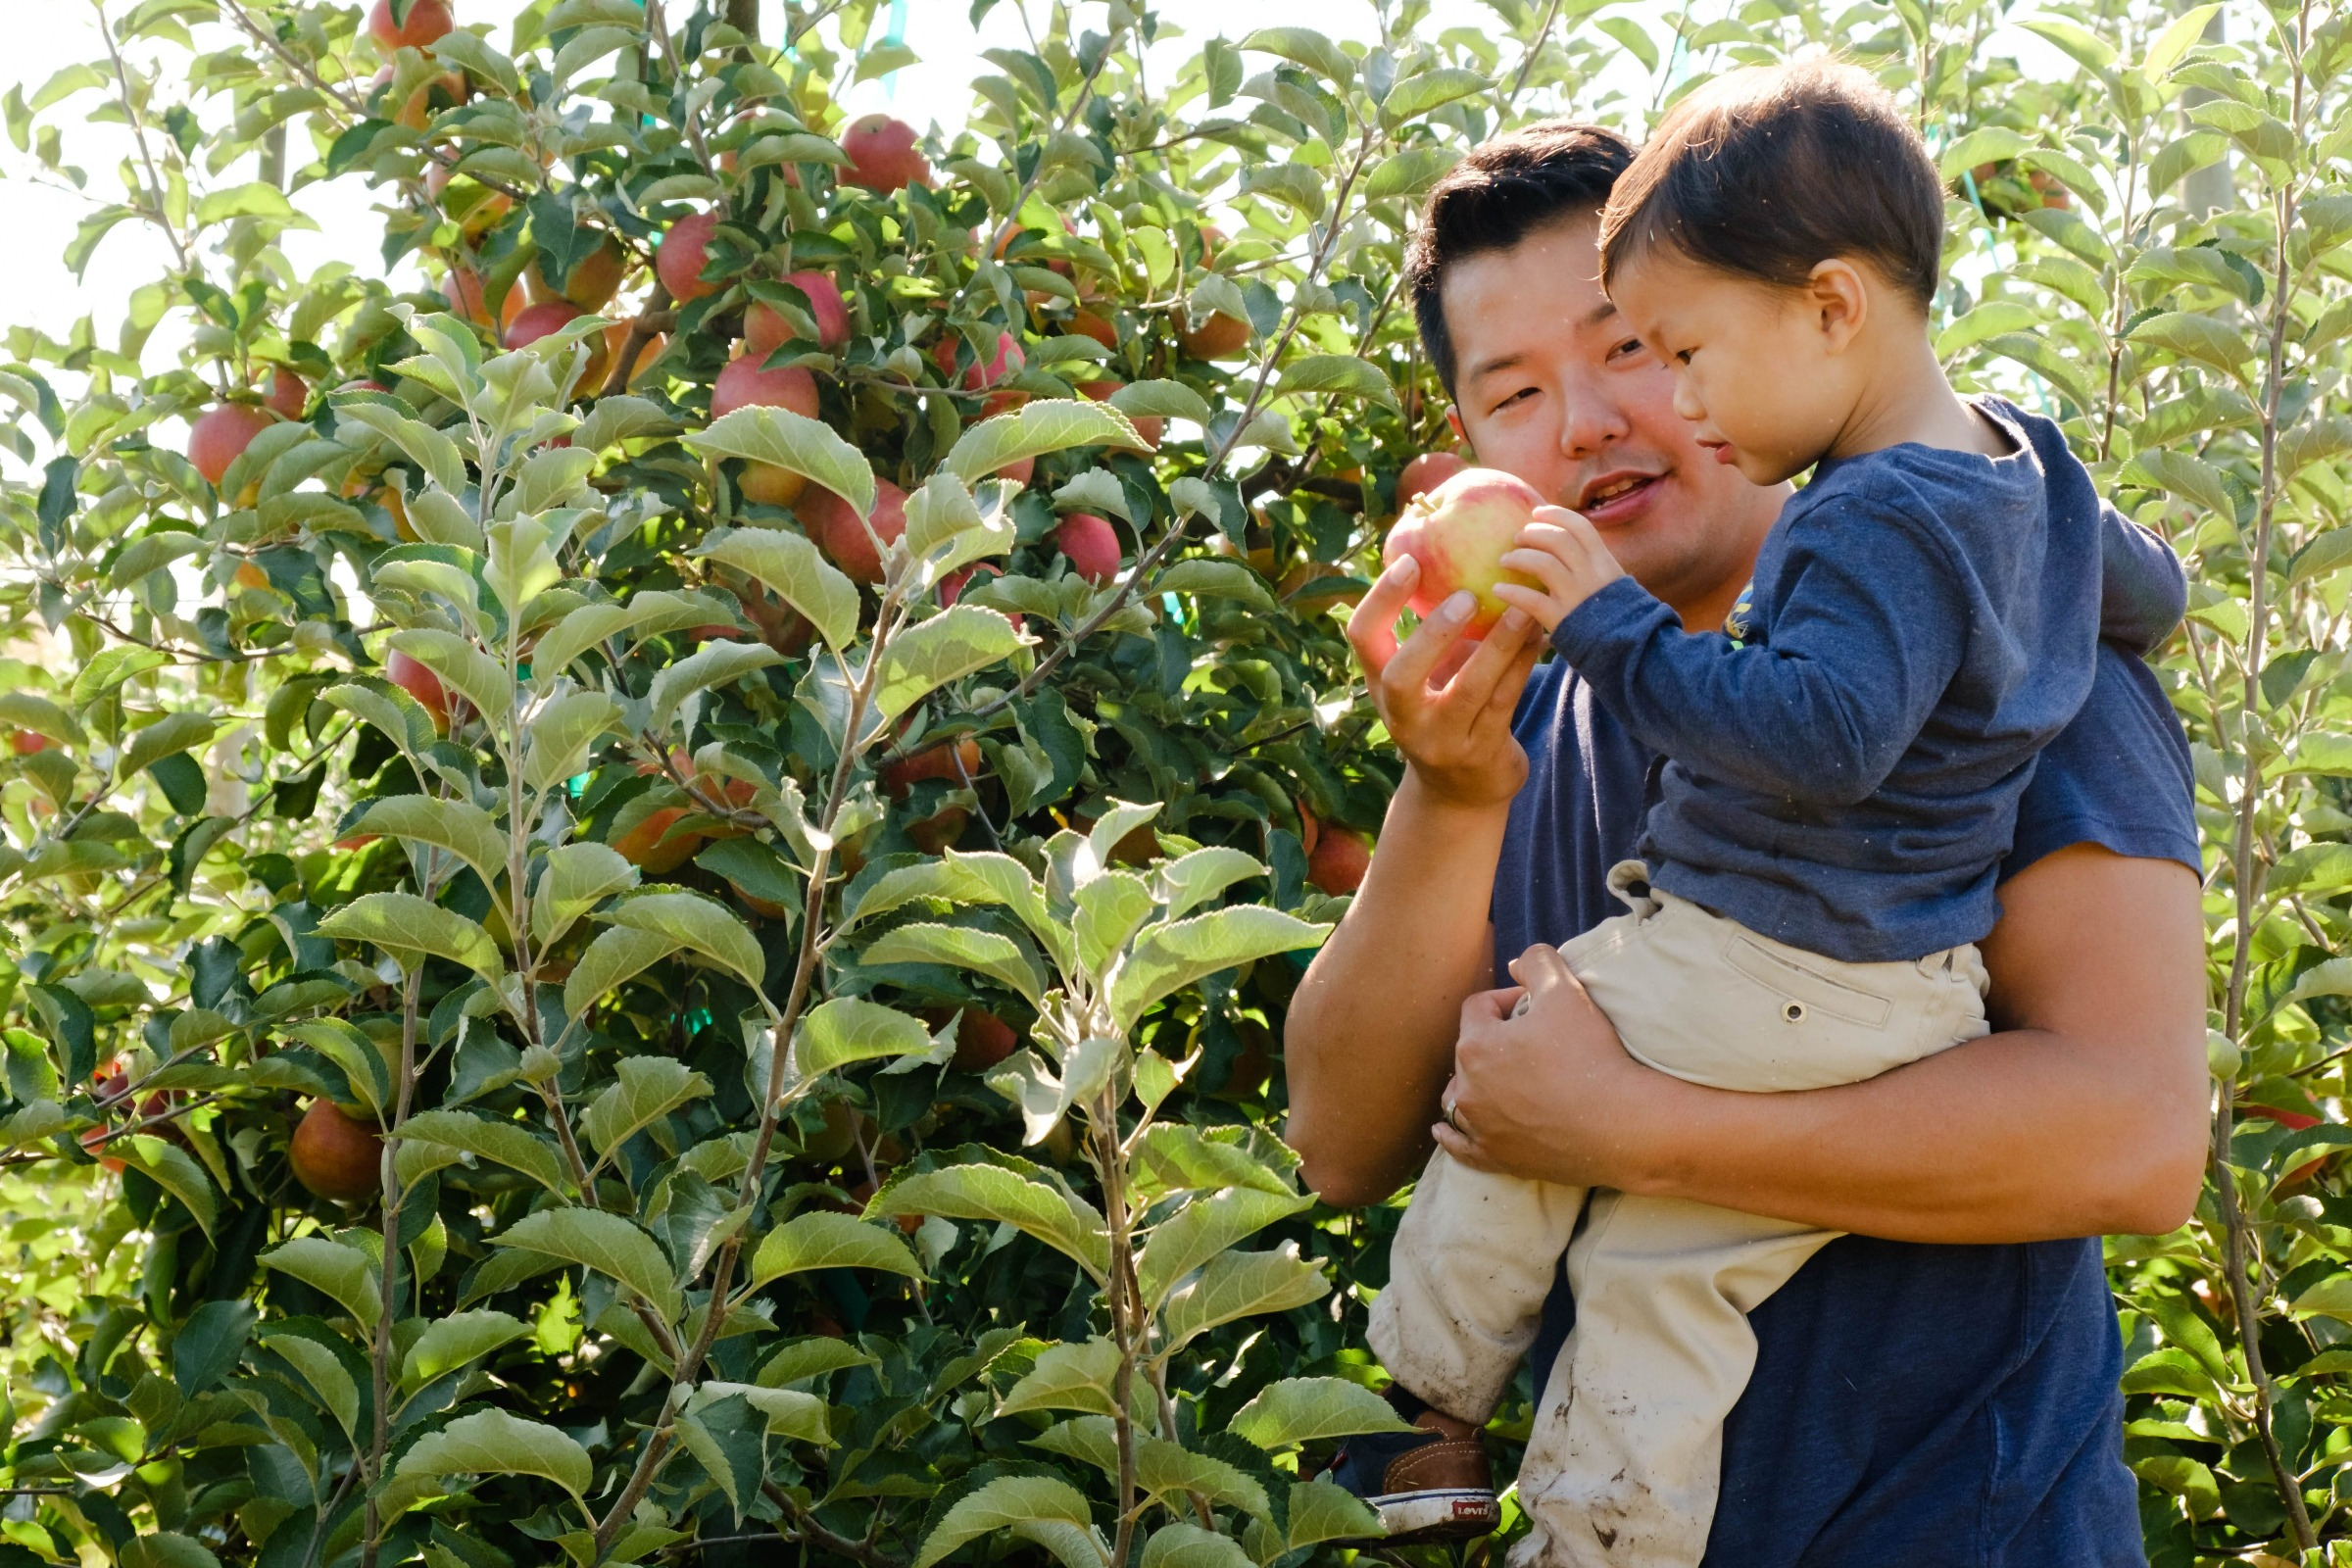 An Asian father picks an apple off of the tree and hands it to his son.